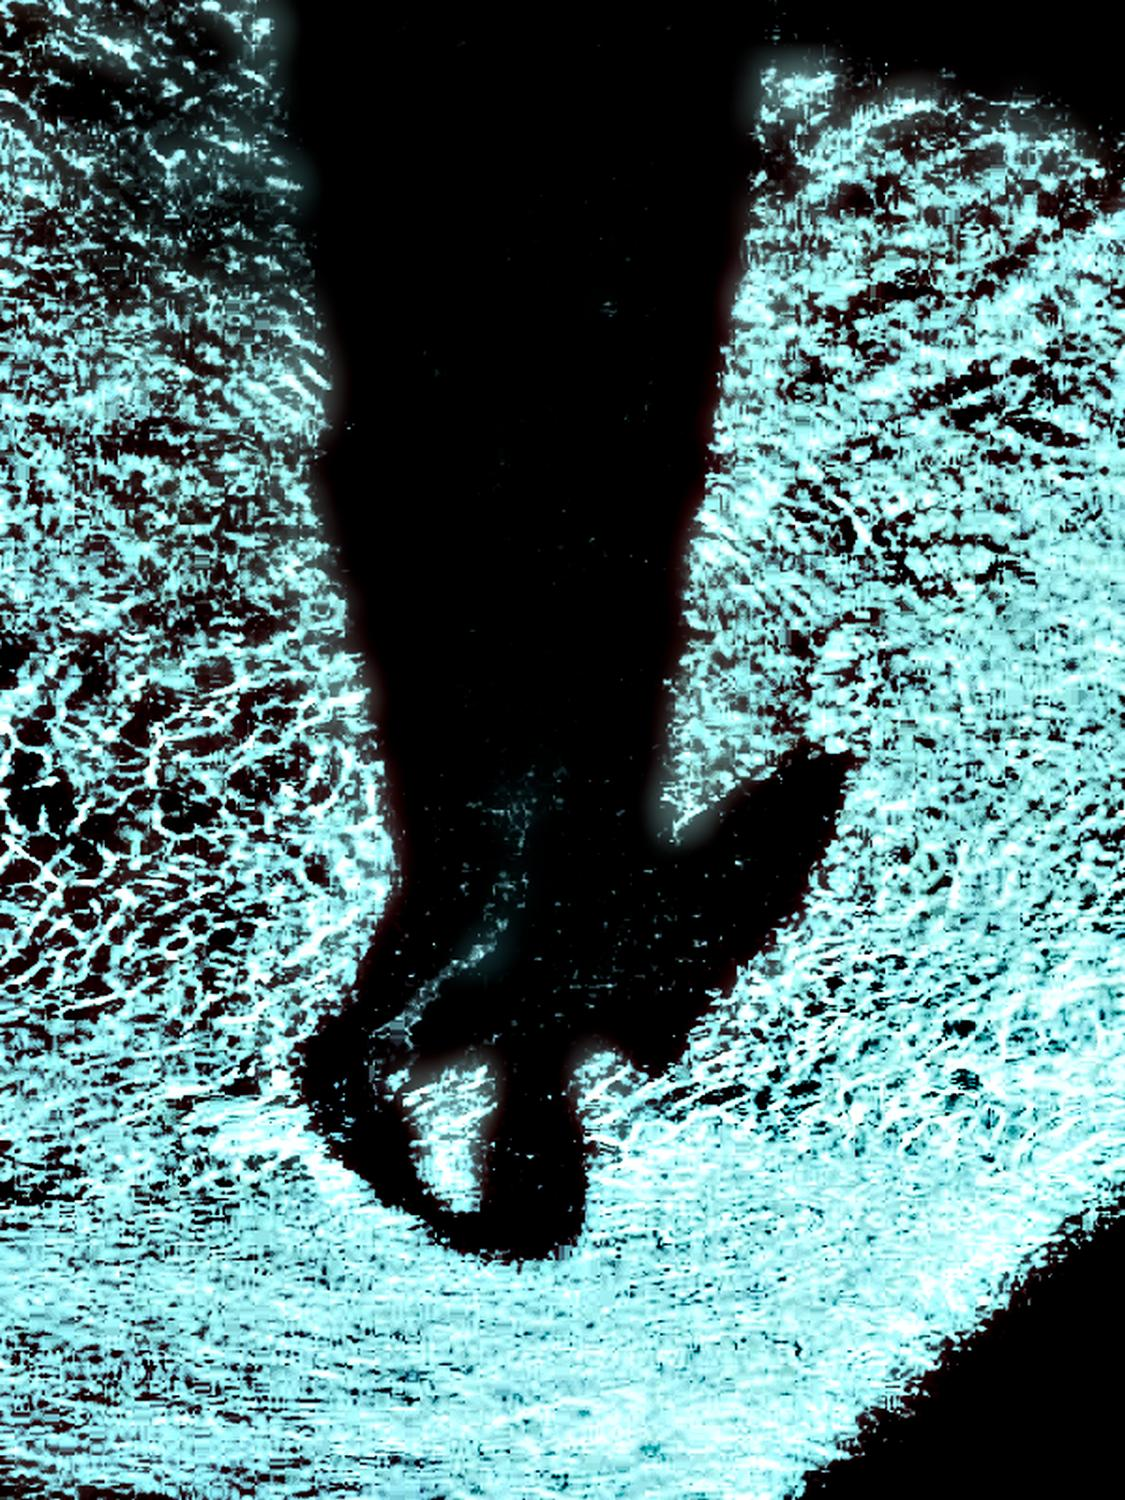 Self Portrait of the artist in the pool - shadow at the bottom of a pool - Self portrait of the artist in the pool - Techno-Impressionist Museum - Techno-Impressionism - art - beautiful - photo photography picture - by Tony Karp